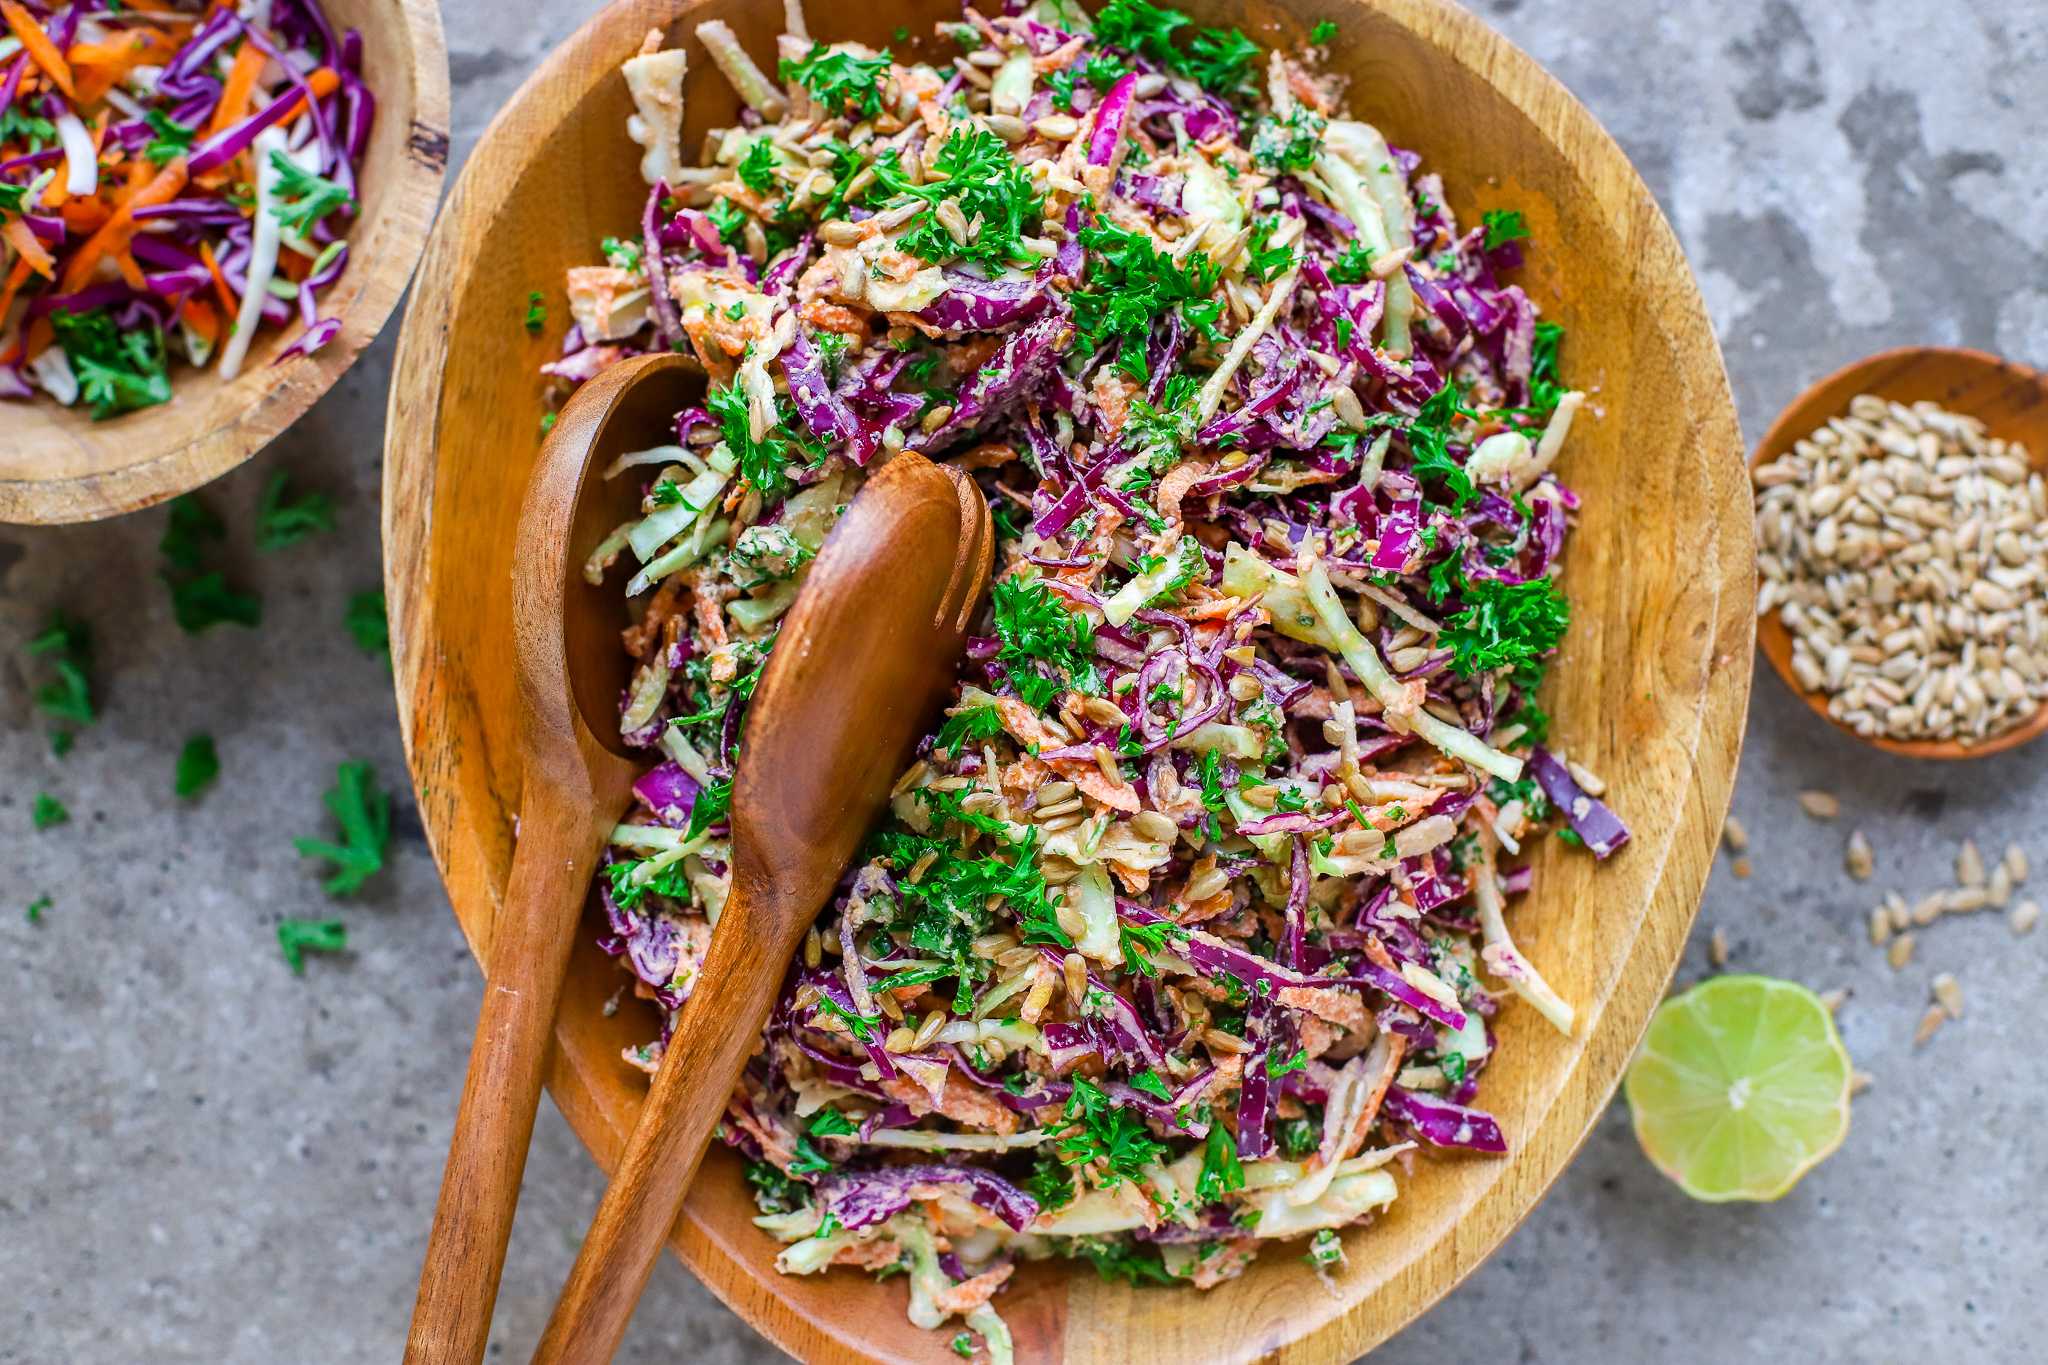 colouful coleslaw in wooden bowl with wooden spoons on concrete background